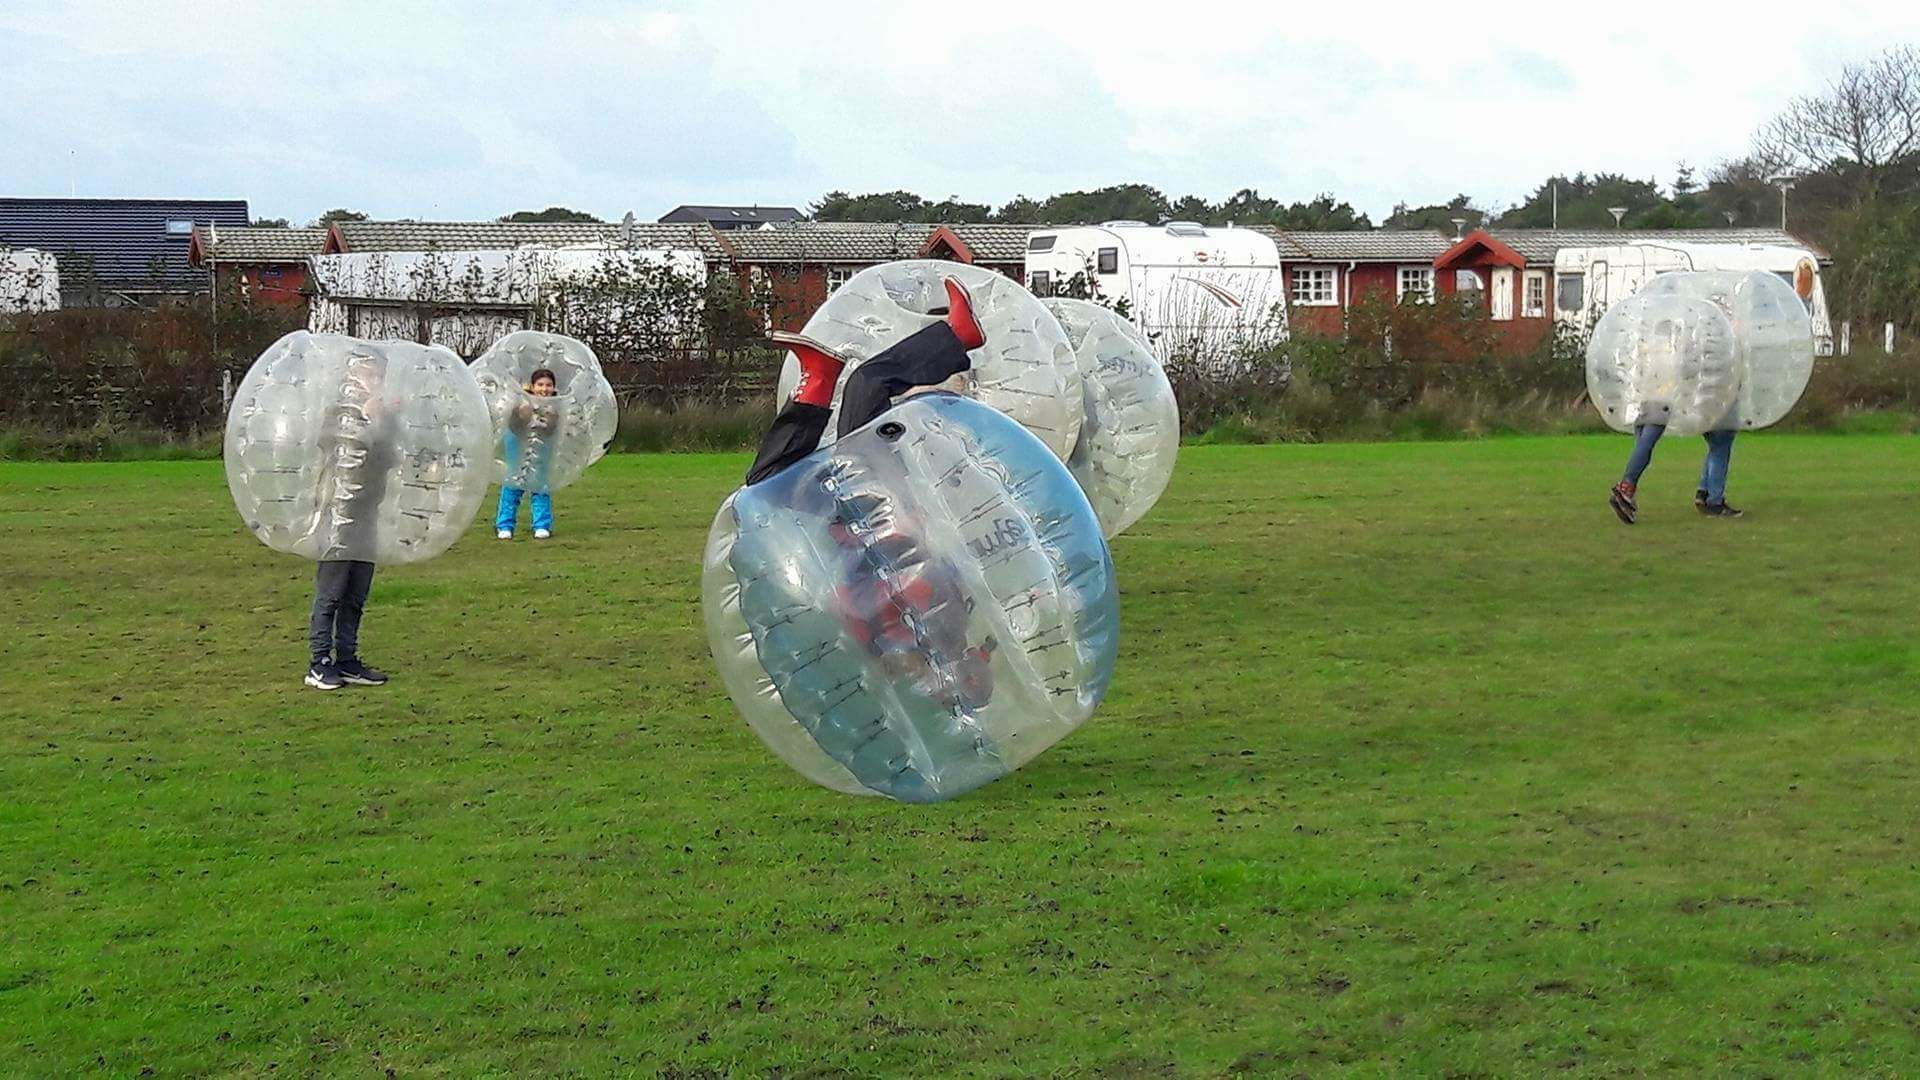 Club Fanø Bubble-Fußball